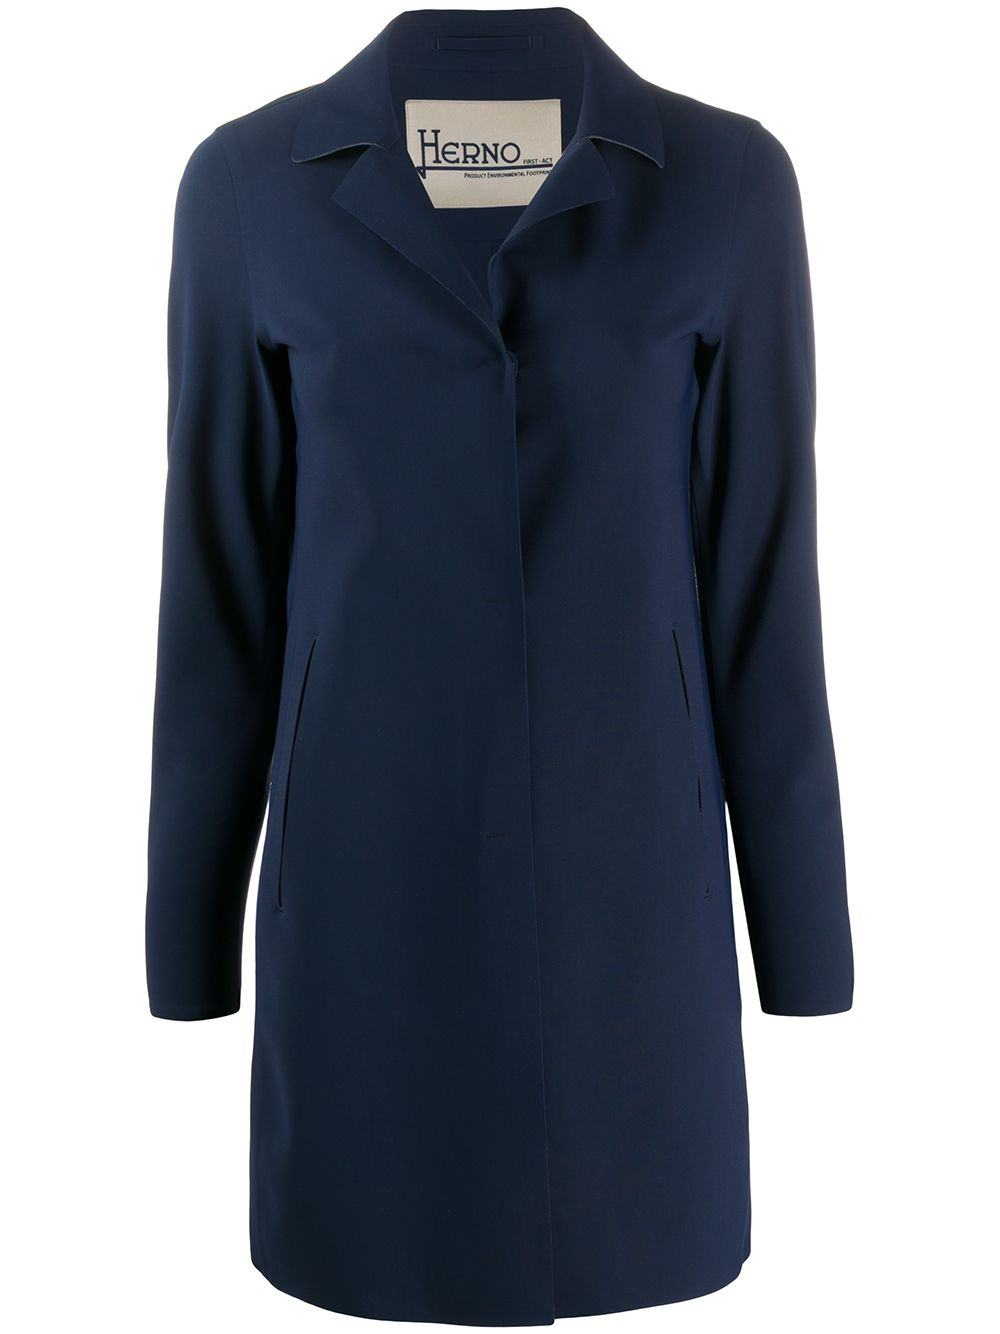 navy blue single-breasted mid-length coat  HERNO |  | CA0292D-13455S9201